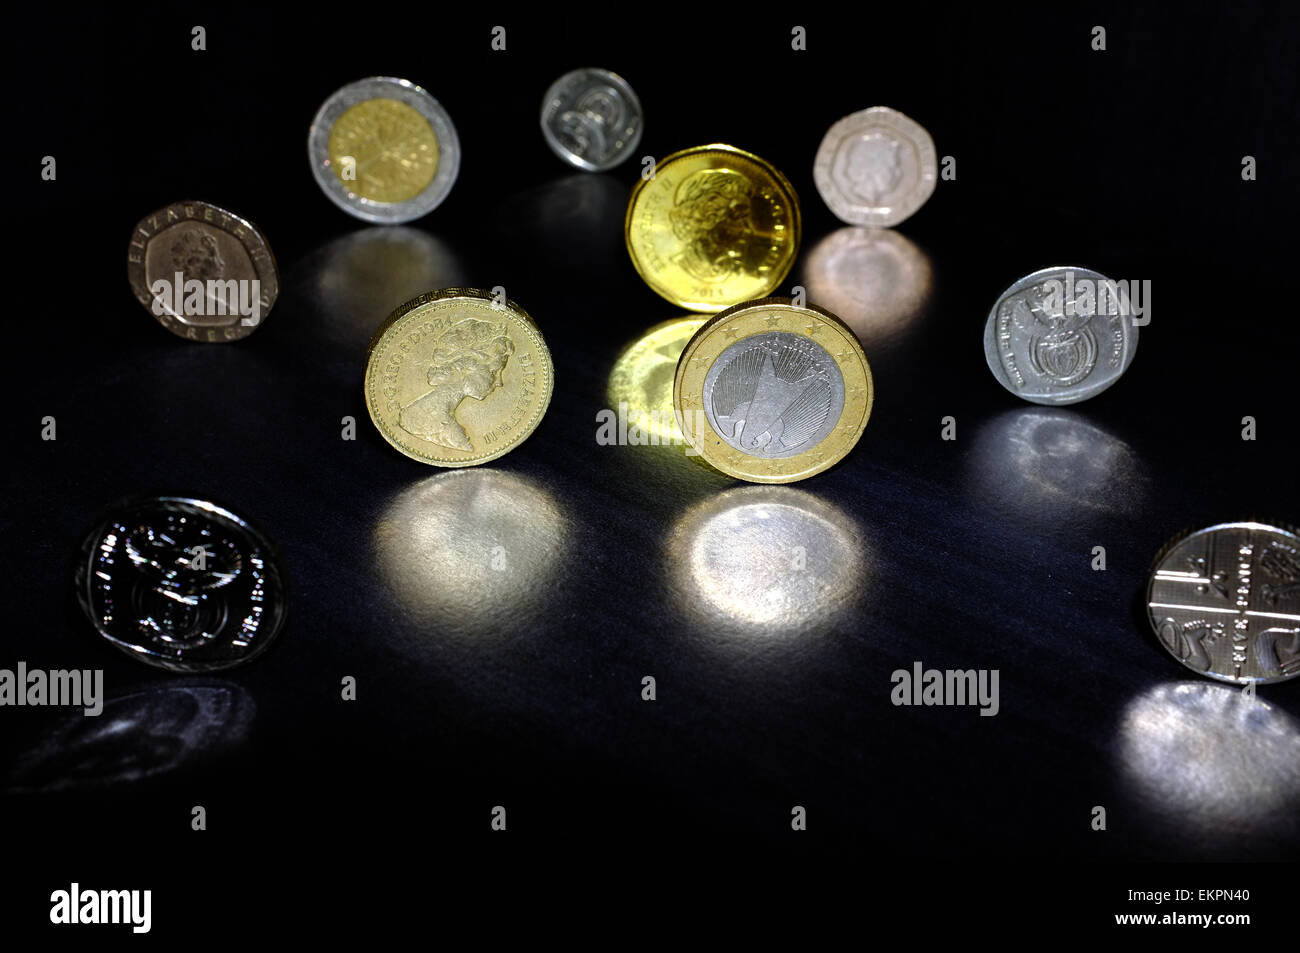 Coins from different currencies reflected on a black surface. - Stock Image